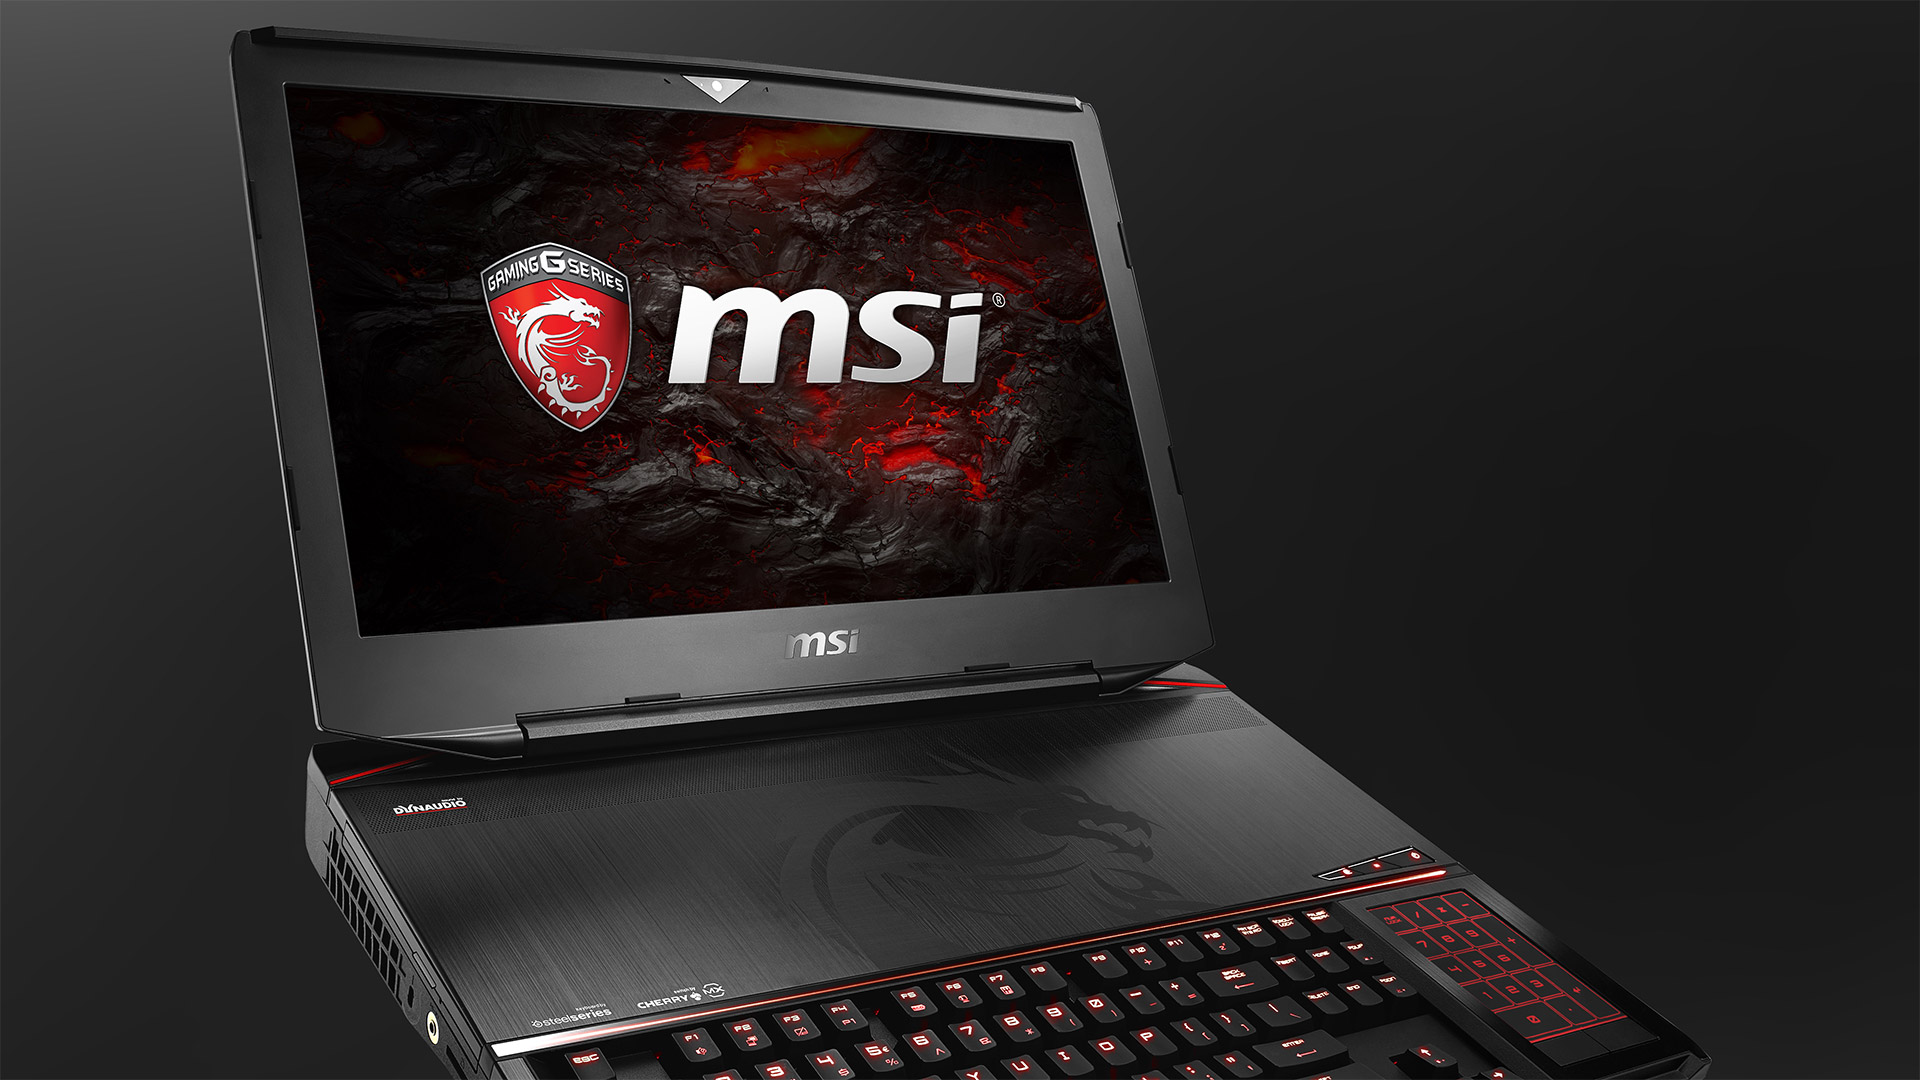 Notebook gaming per tutti da MSI, grazie alle GPU GeForce GTX 10 di NVIDIA